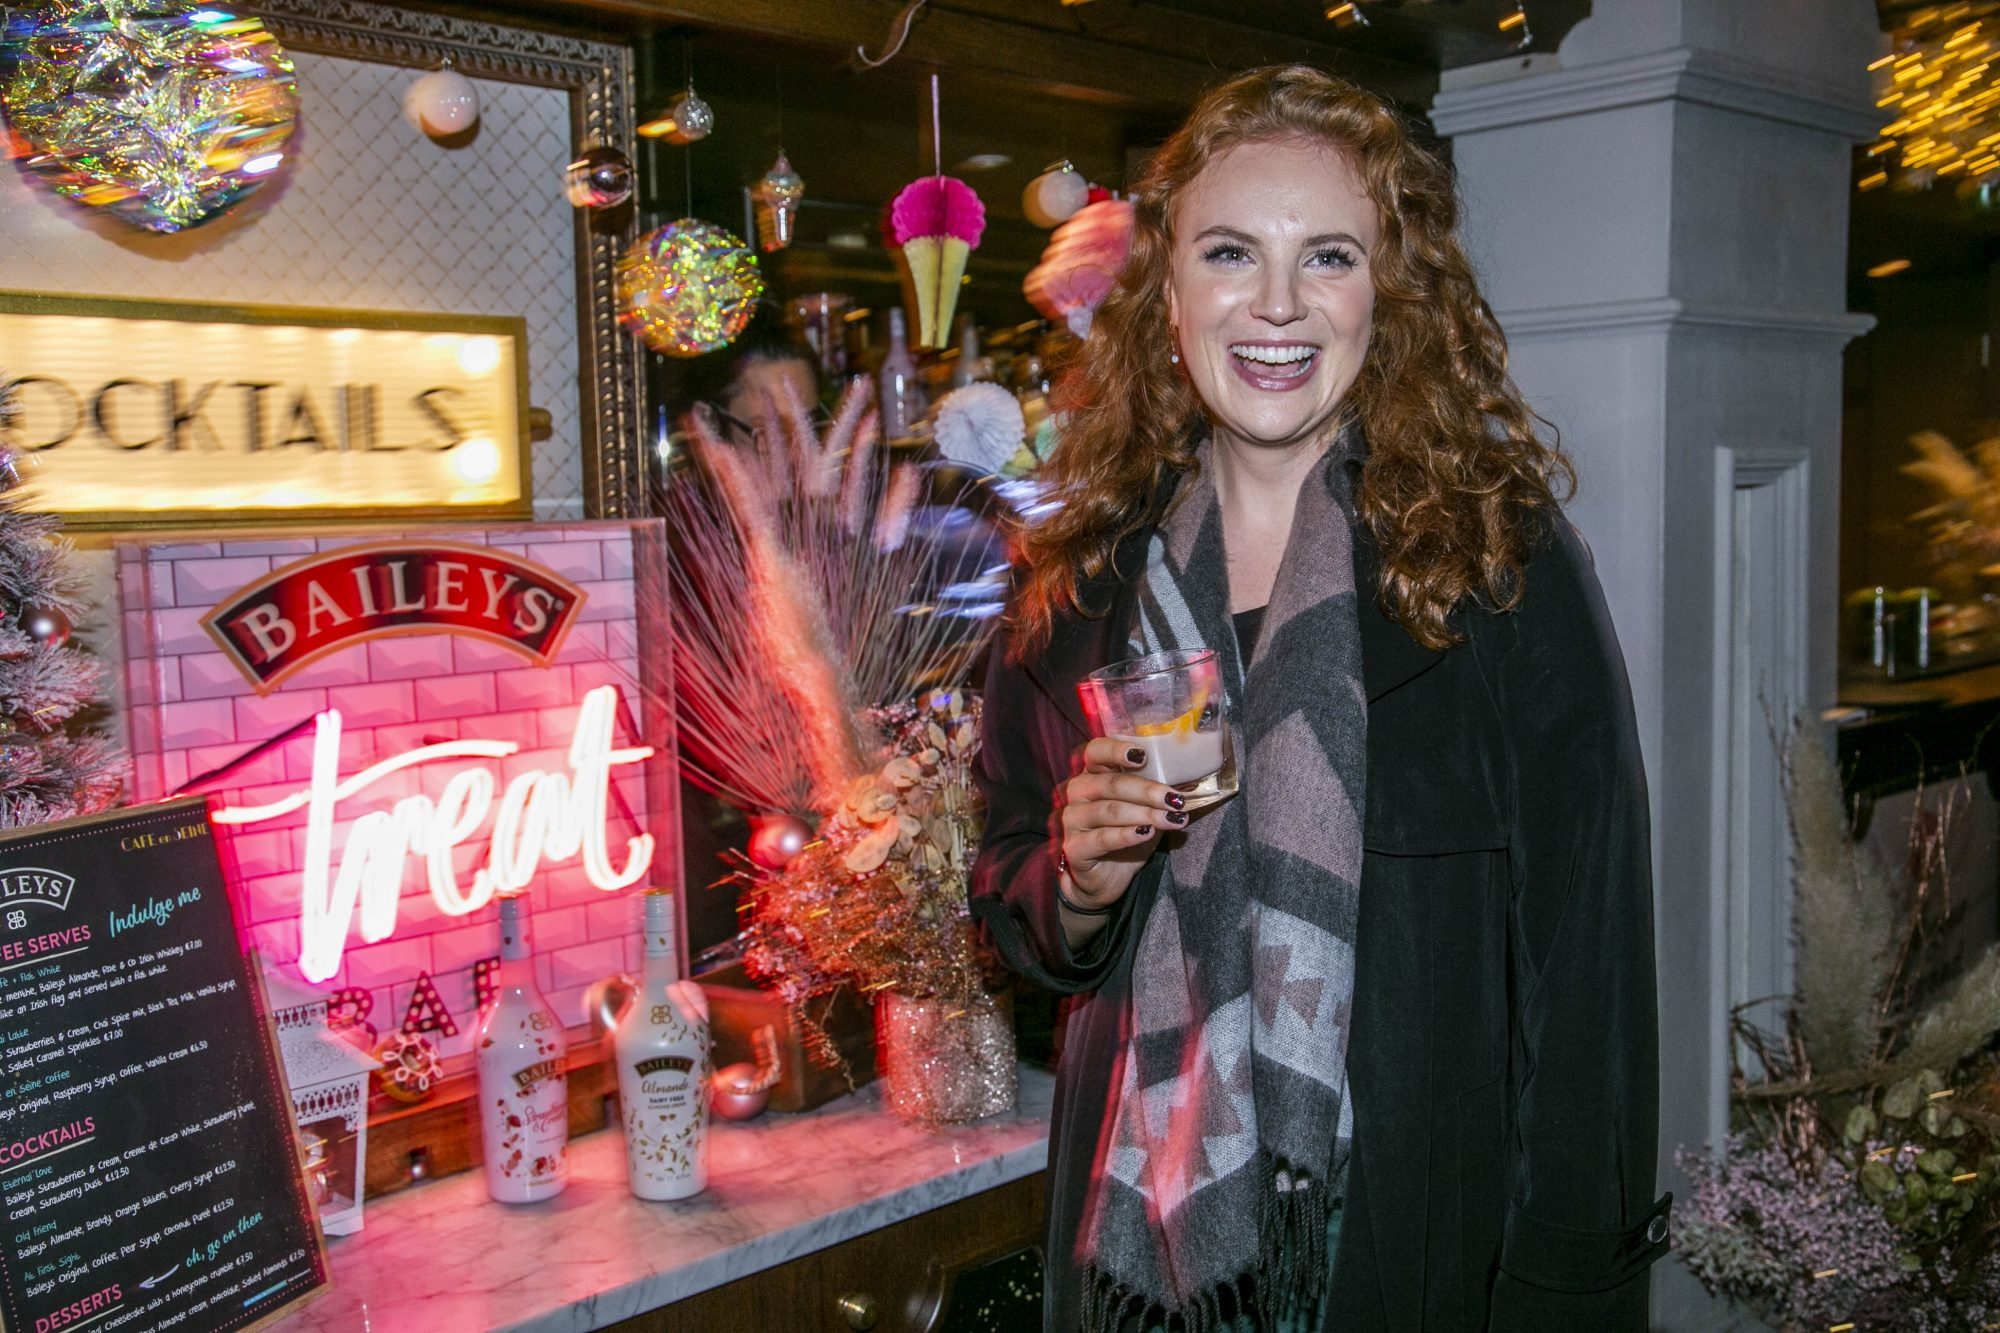 Guests pictured celebrating the launch of Bailey's Treat Bar series with a mix of irresistible exclusive Baileys desserts and cocktails at Café en Seine.